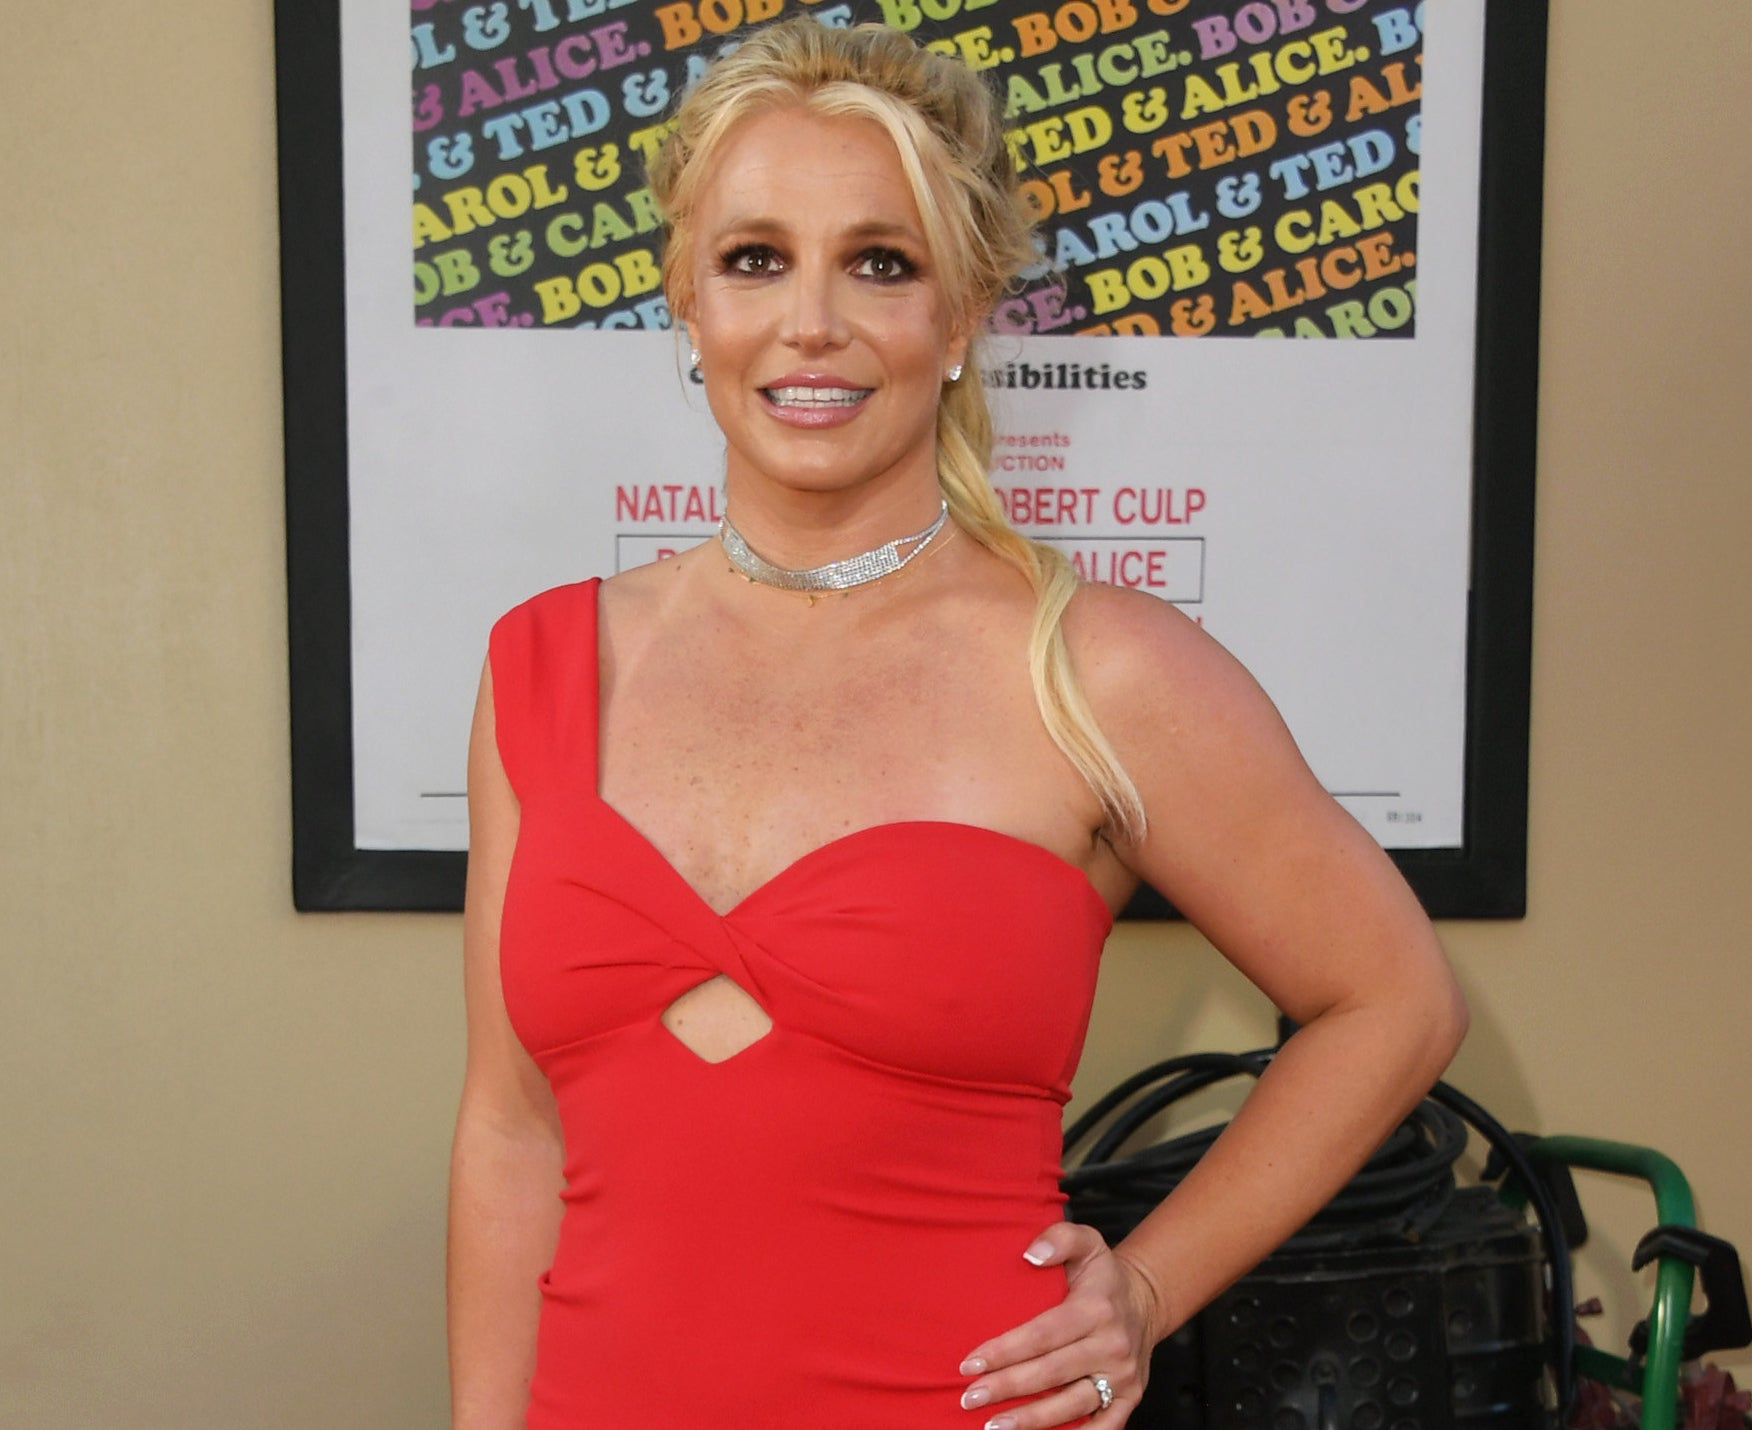 Britney wears a red one shoulder dress while attending an event